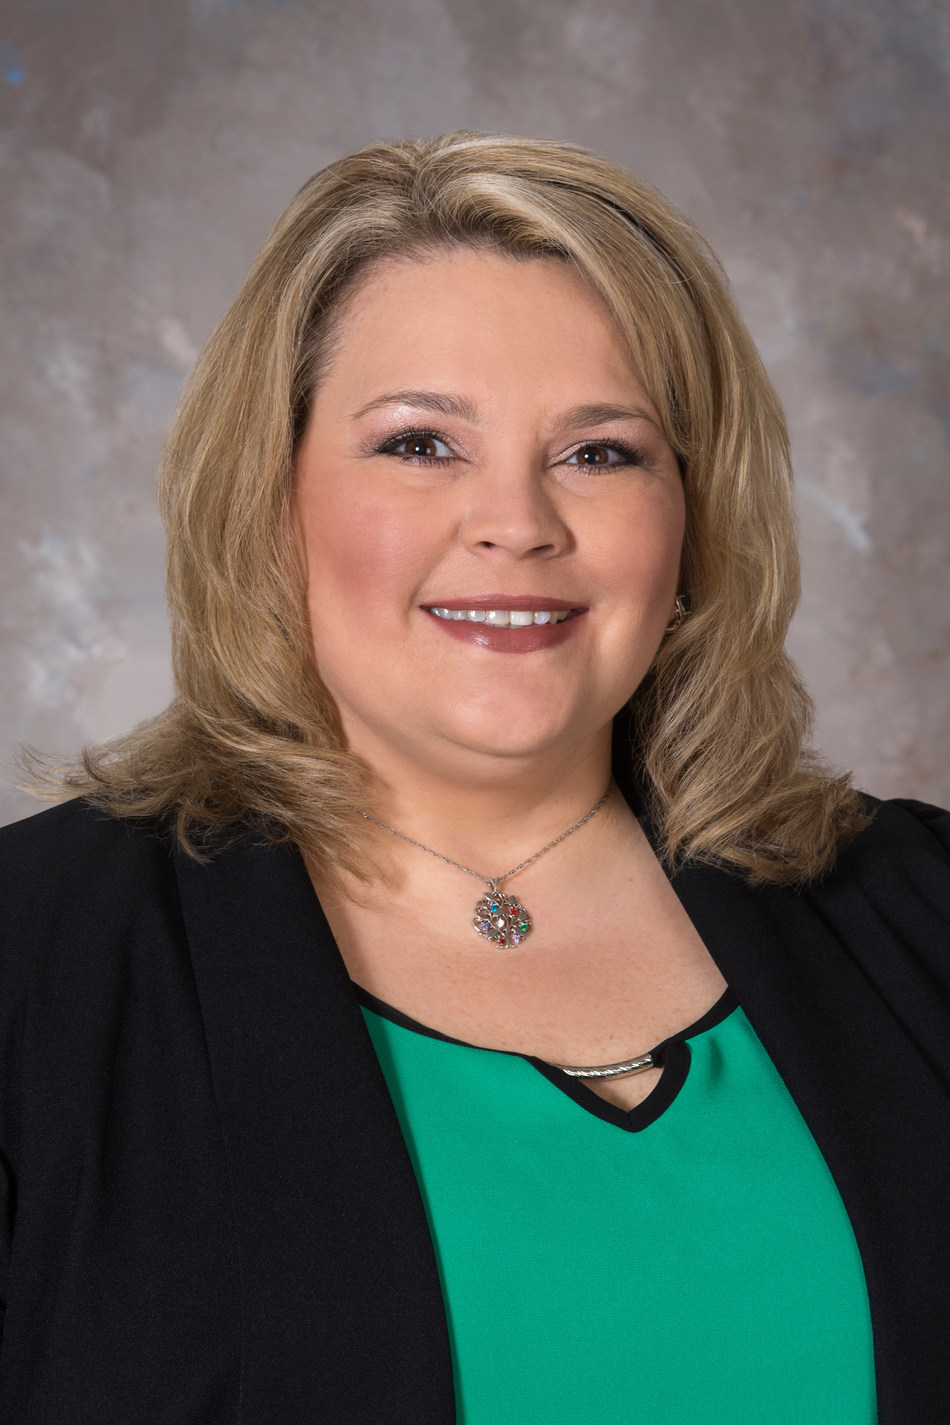 Watercrest Senior Living Group proudly welcomes Angela Bowden to their executive leadership team as Regional Director of Operations. Bowden will strengthen operational leadership as Watercrest prepares to open a dozen new senior living communities in the next few years.